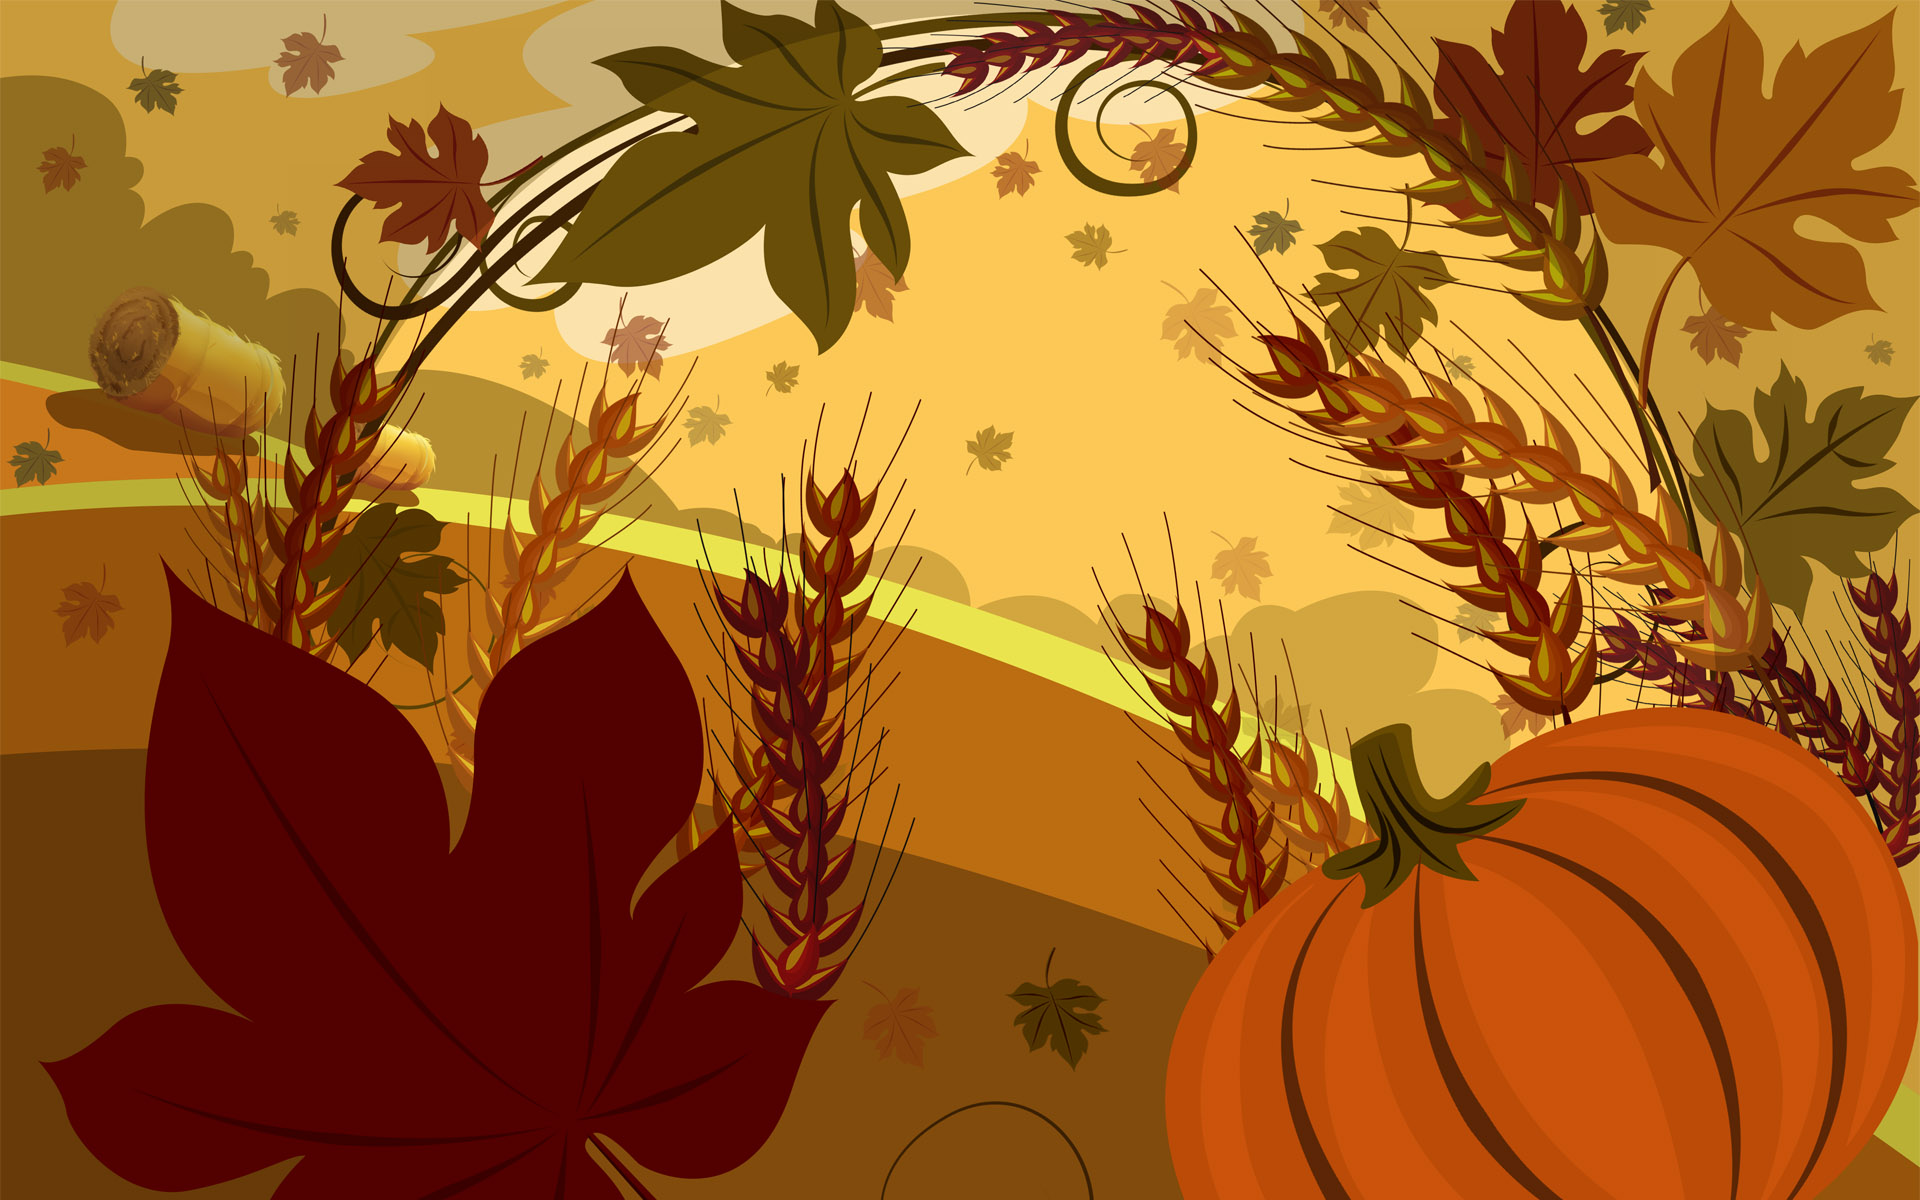 quality thanksgiving desktop backgrounds wallpapers, pumpkin #1695